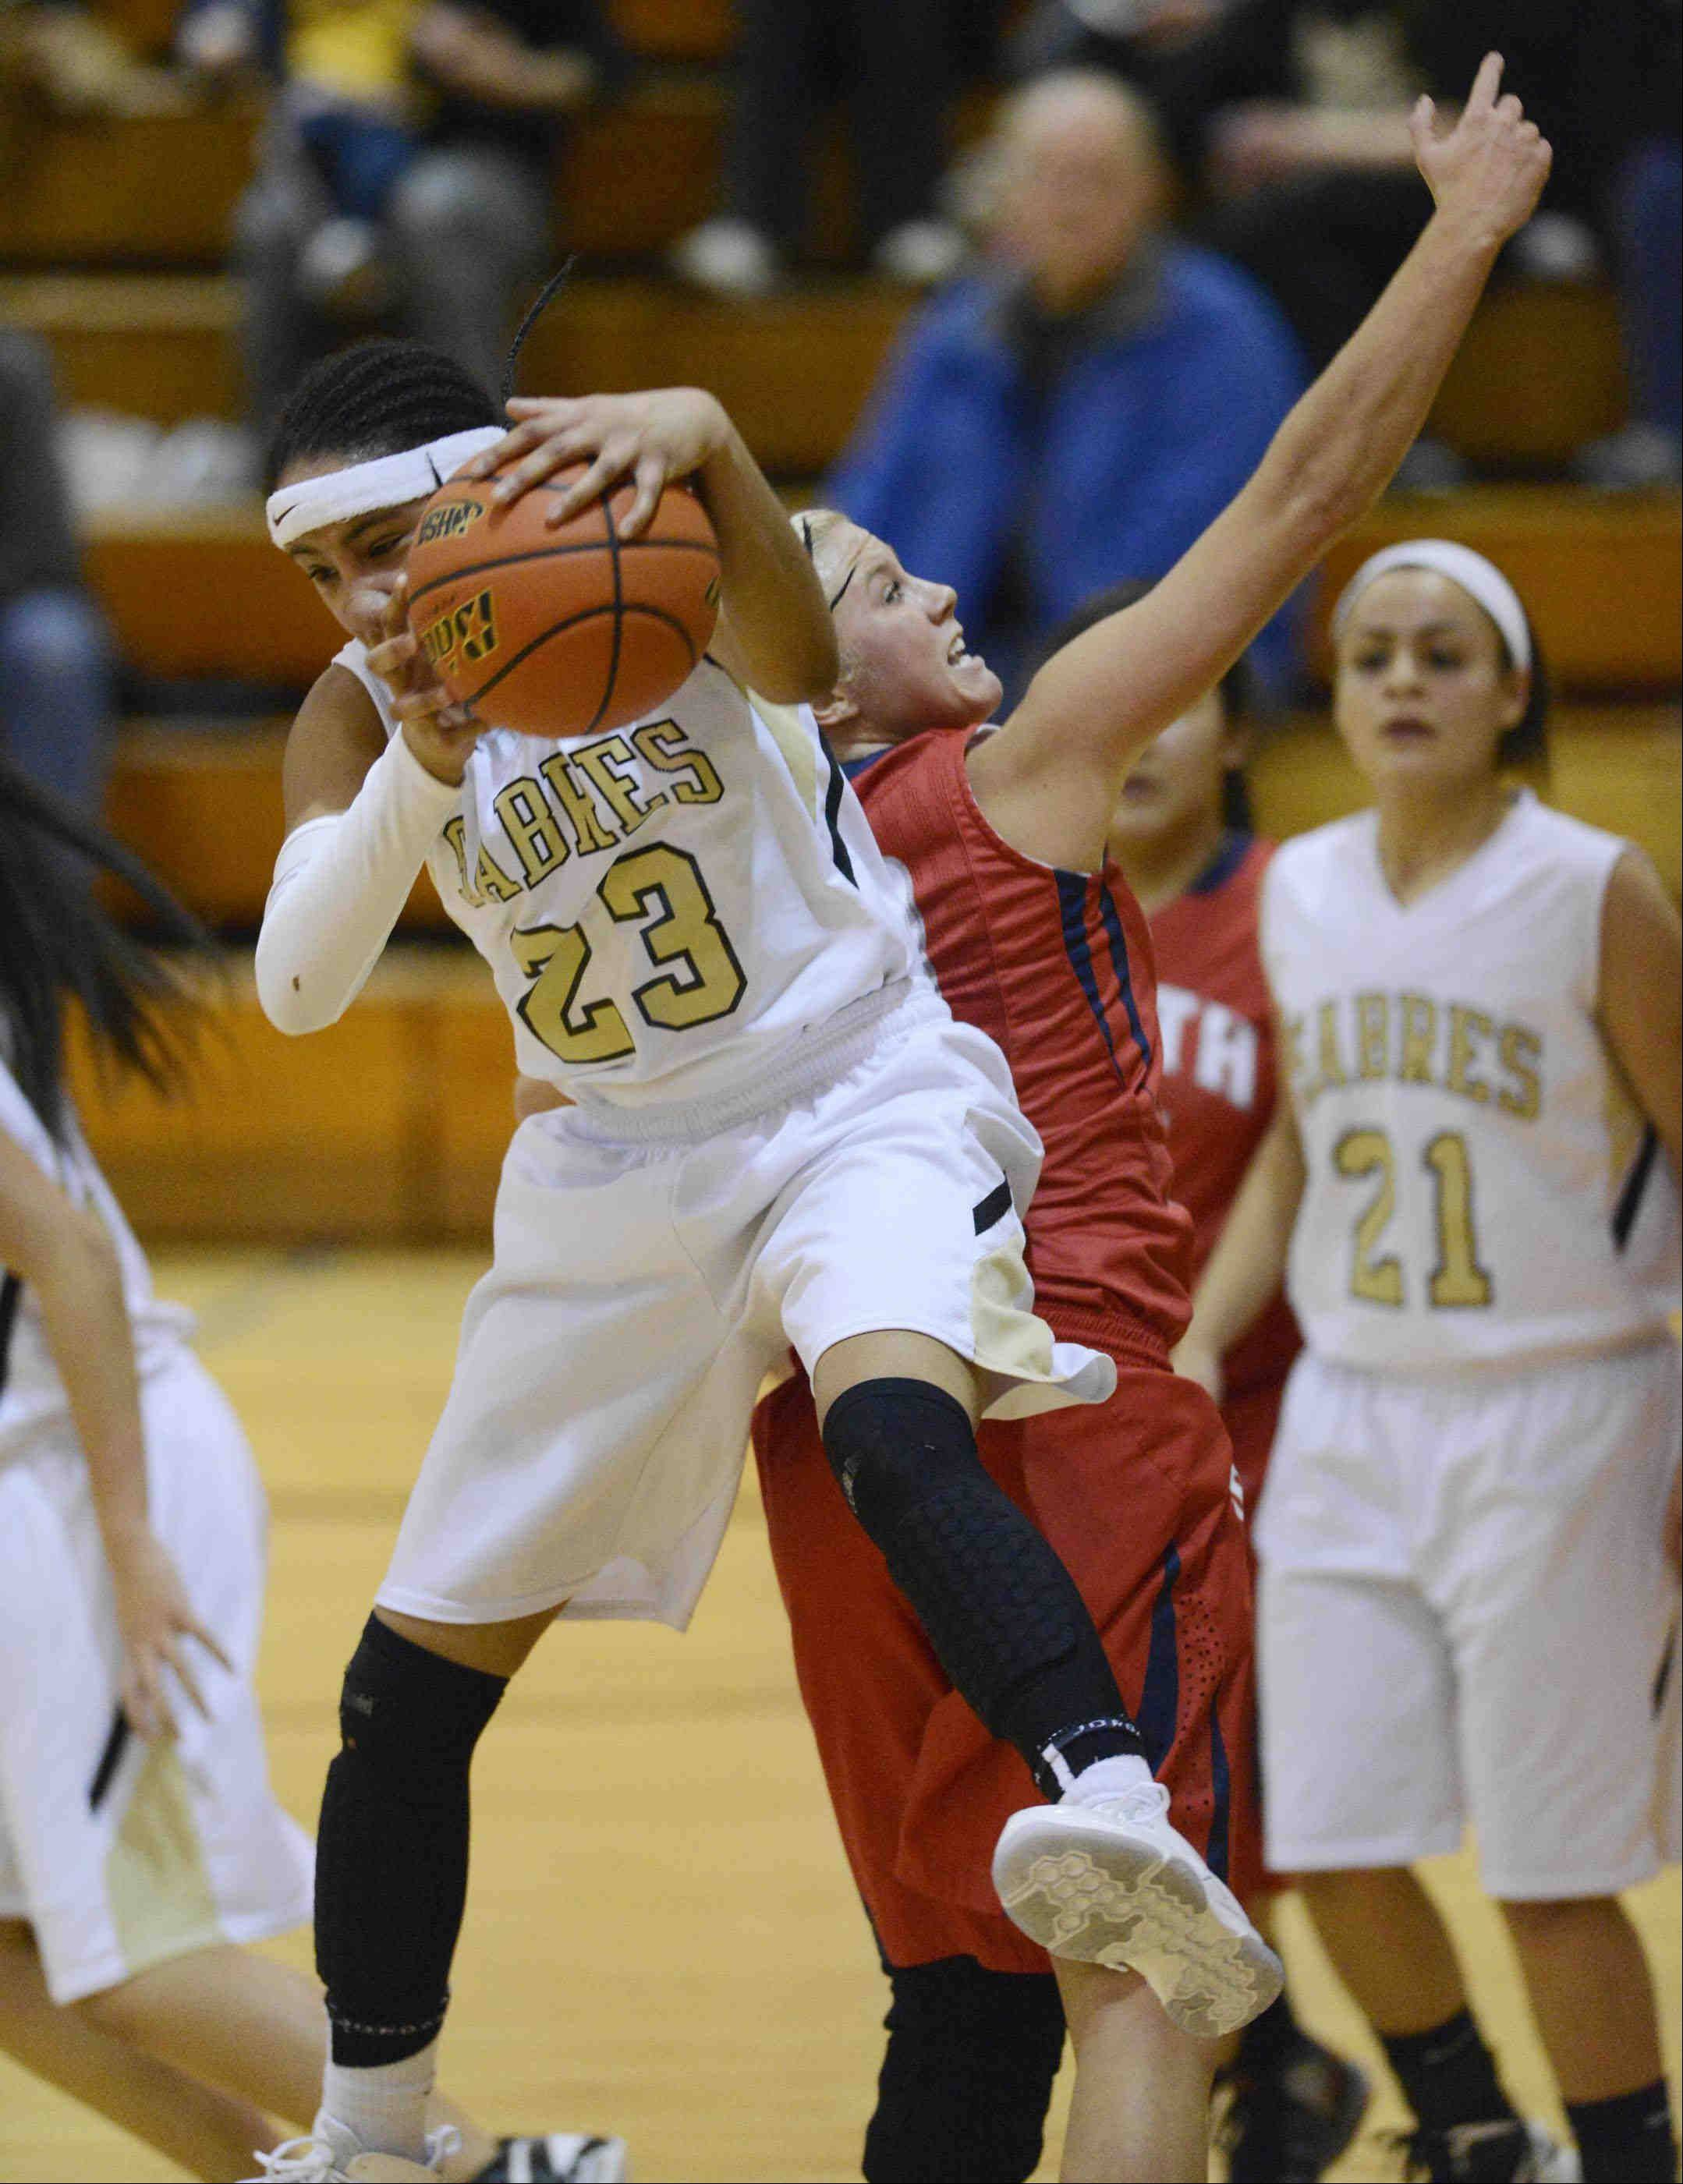 Streamwood's Deja Moore takes a rebound away from South Elgin's Kara Rodriguez.